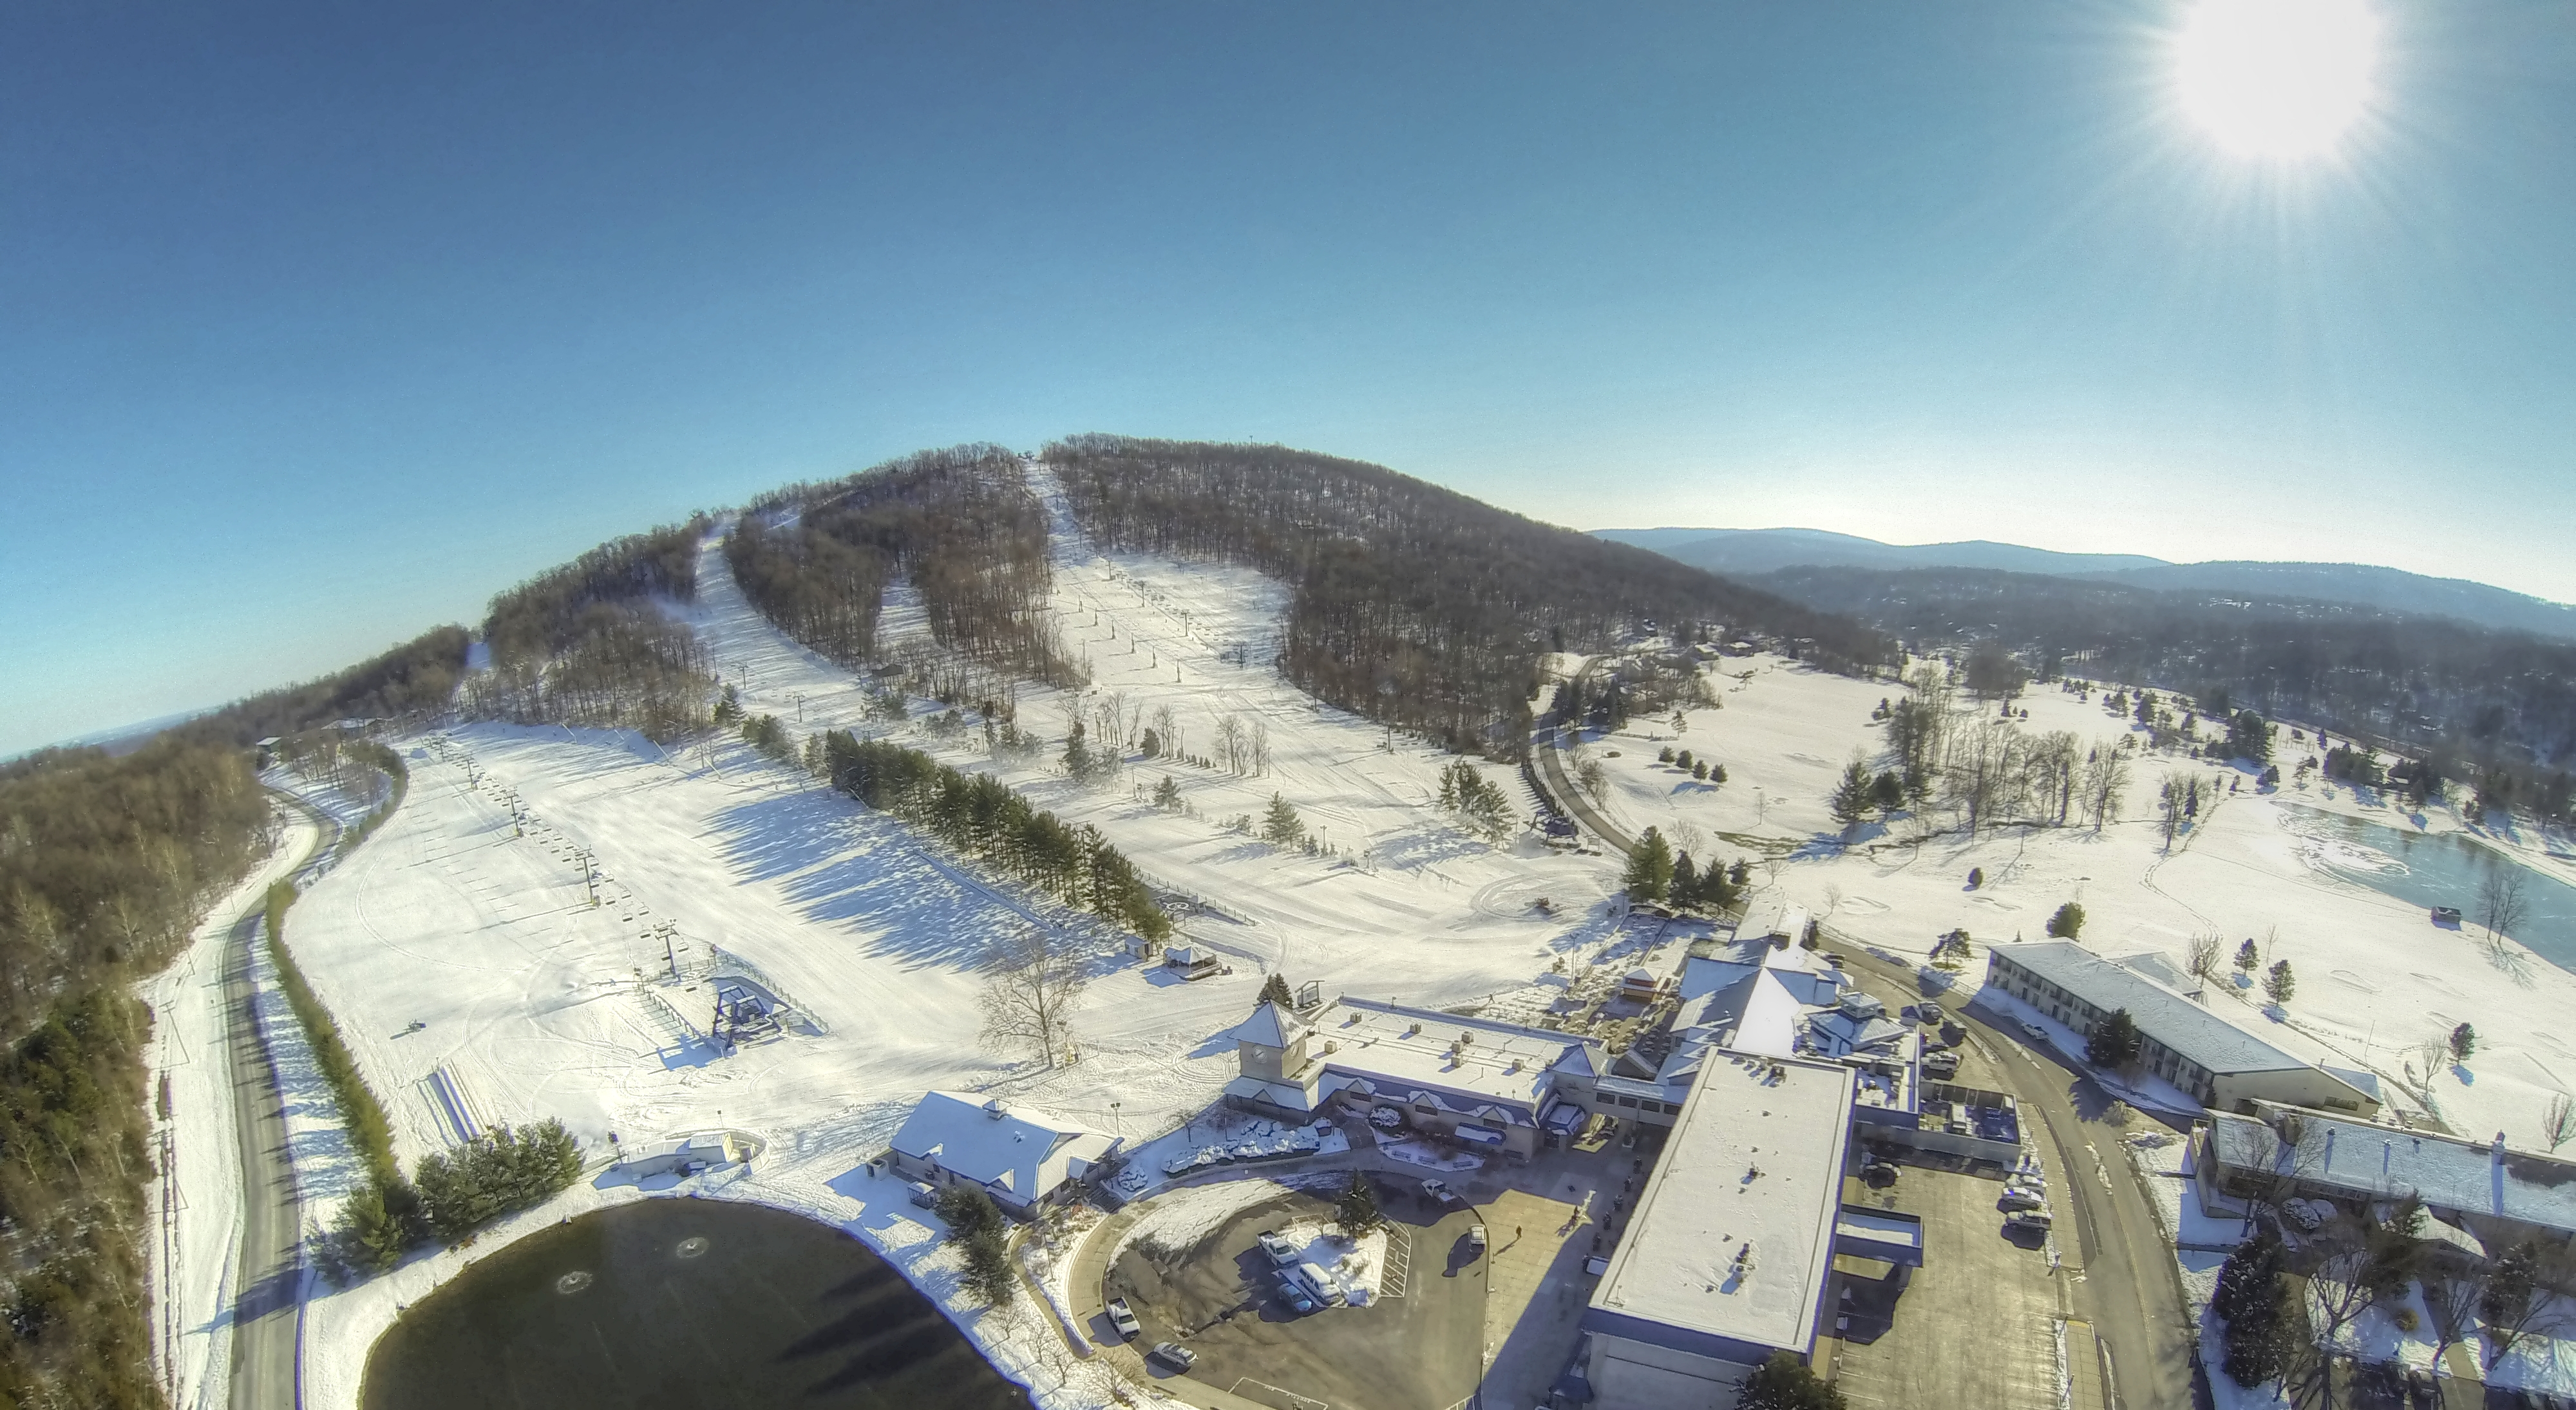 liberty mountain resort – a winter paradise | the road to gettysburg